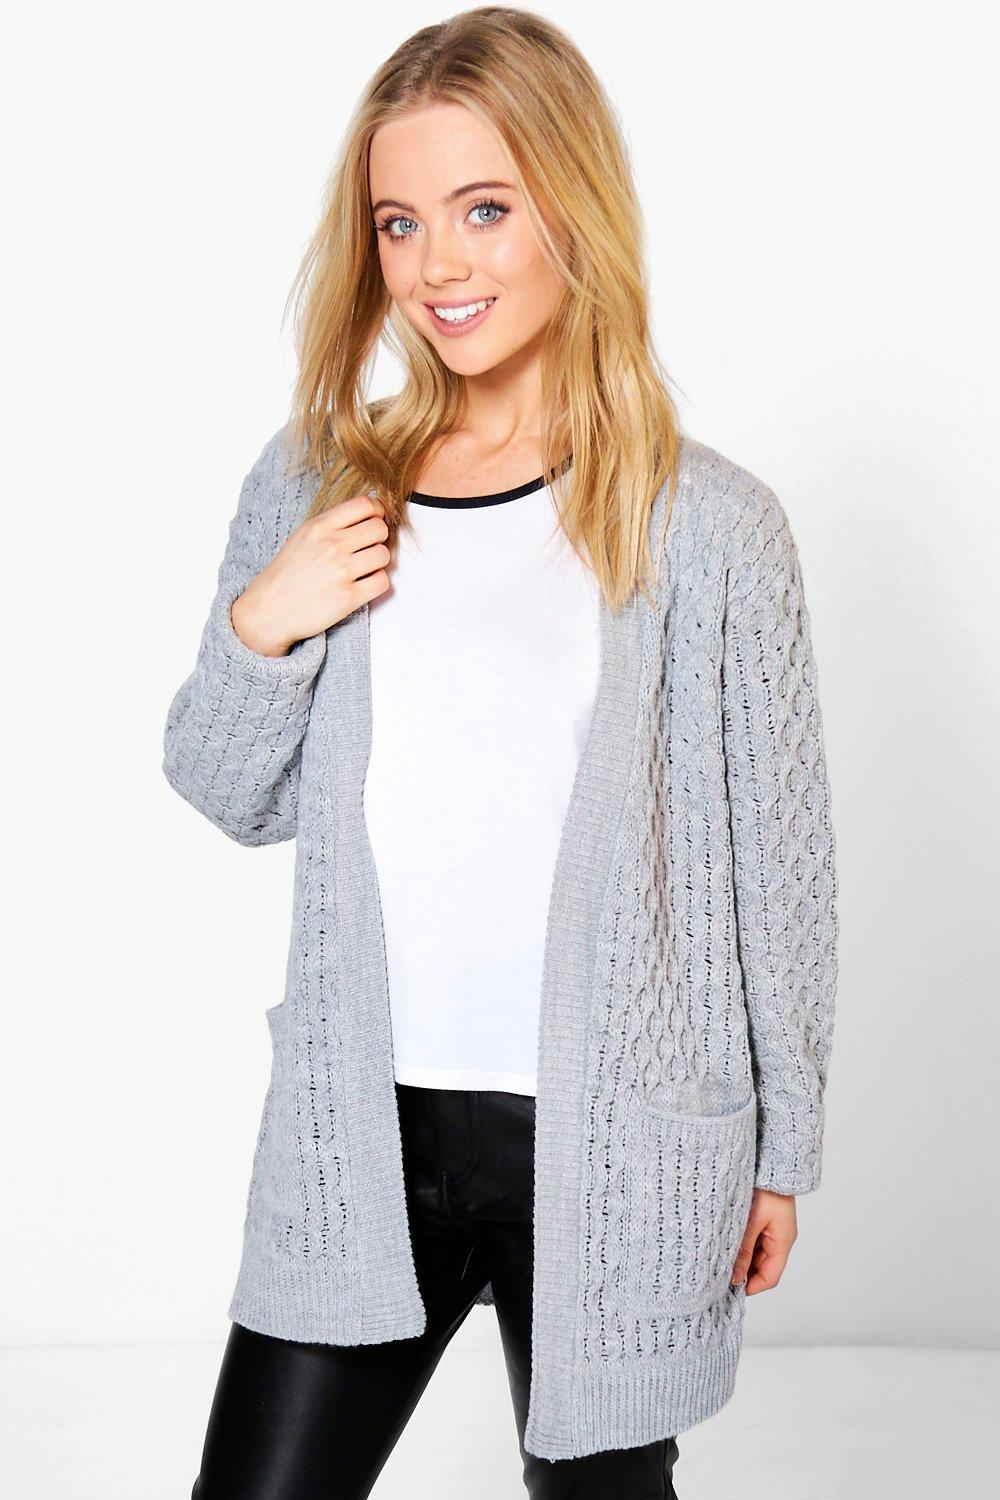 Shop a great selection of Petite Sweaters for Women at Nordstrom Rack. Find designer Petite Sweaters for Women up to 70% off and get free shipping on orders over $